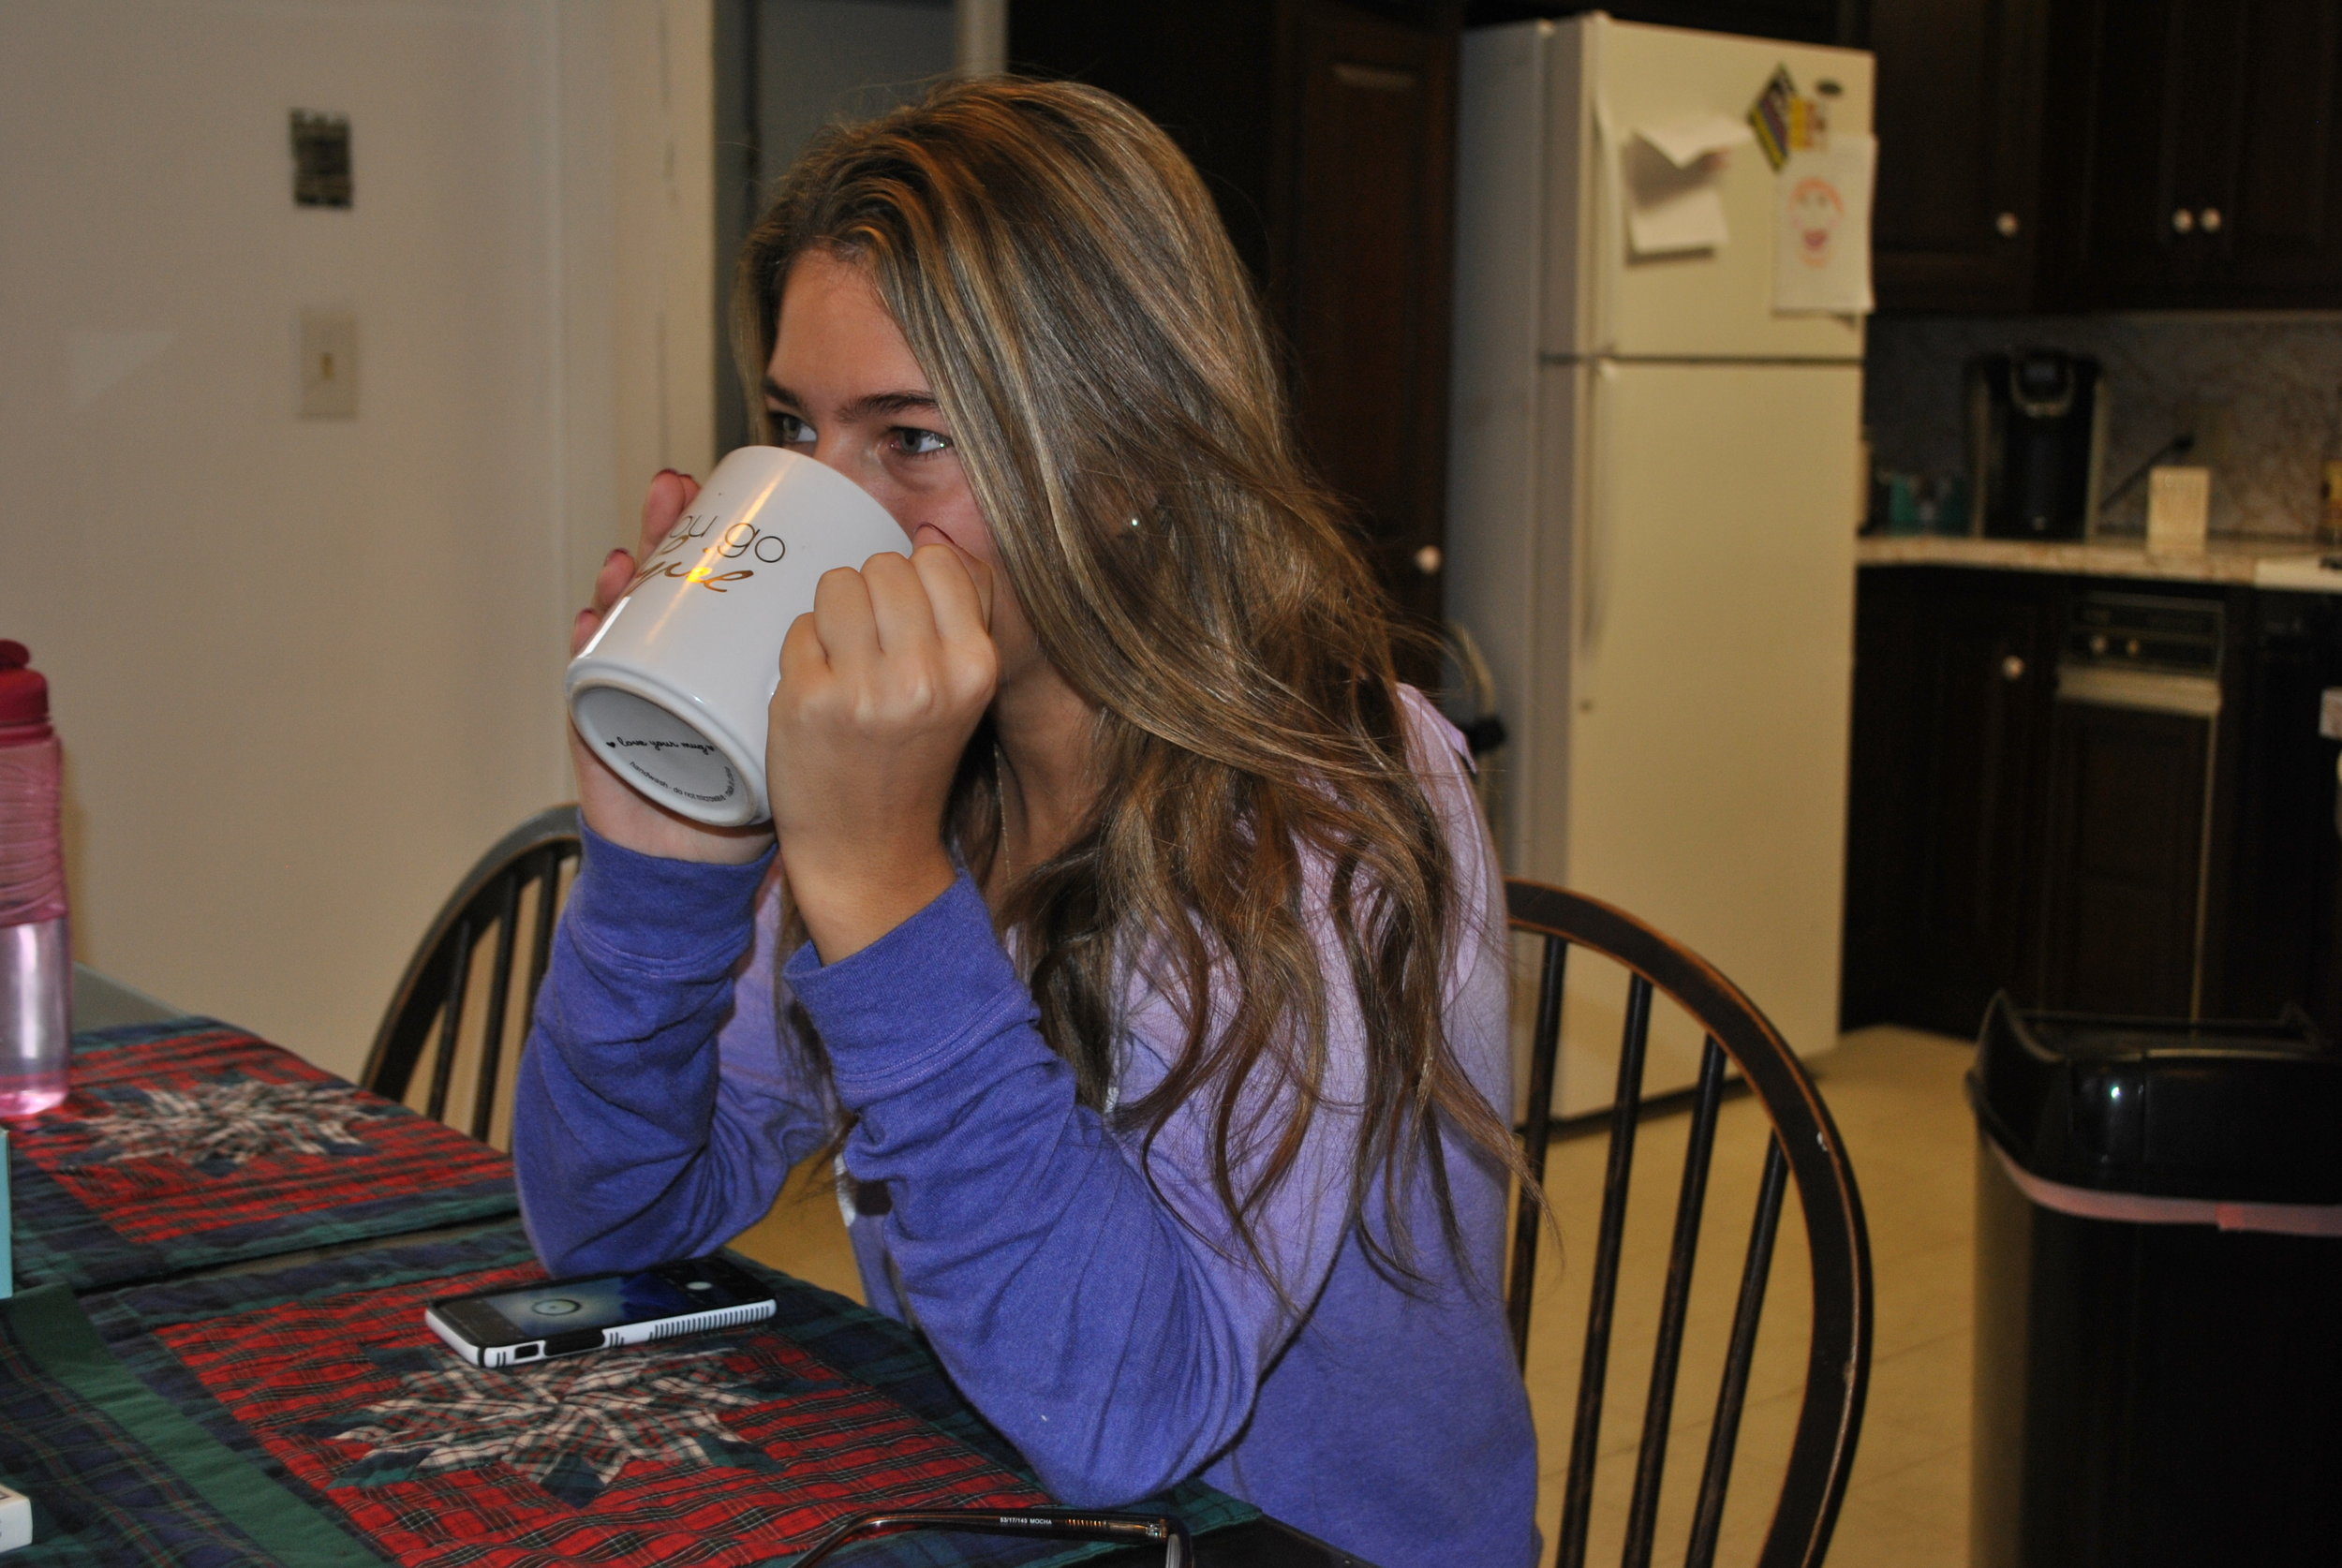 Sam Masetti drinking coffee as she described almost missing her final exam.